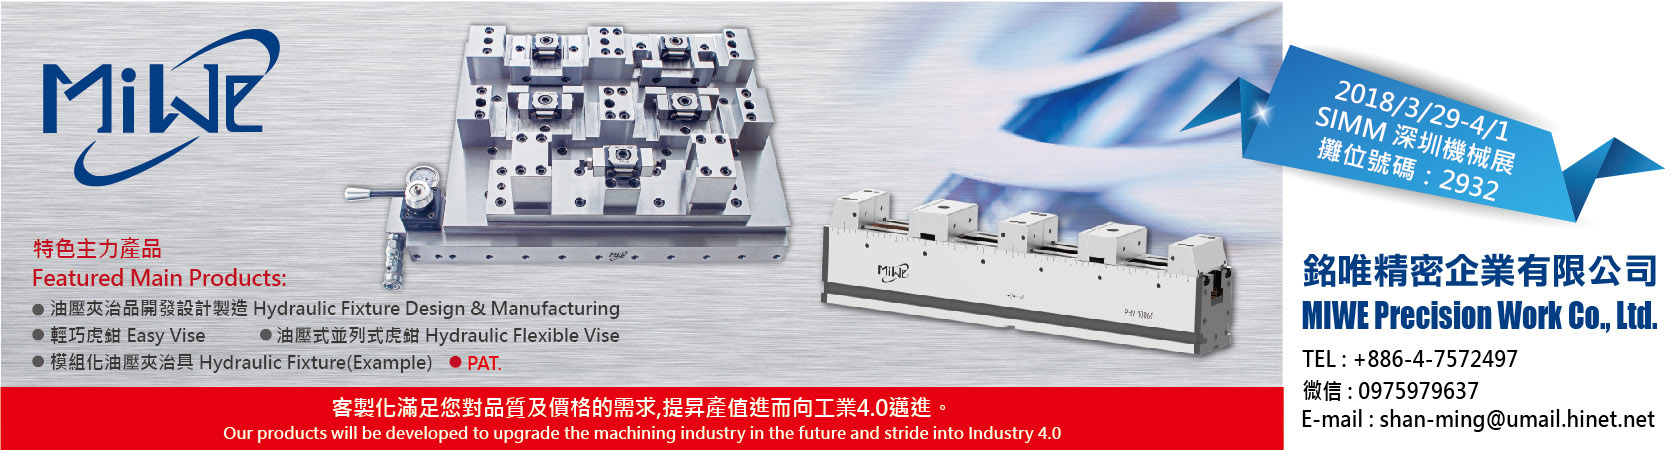 MIWE PRECISION WORK CO., LTD.